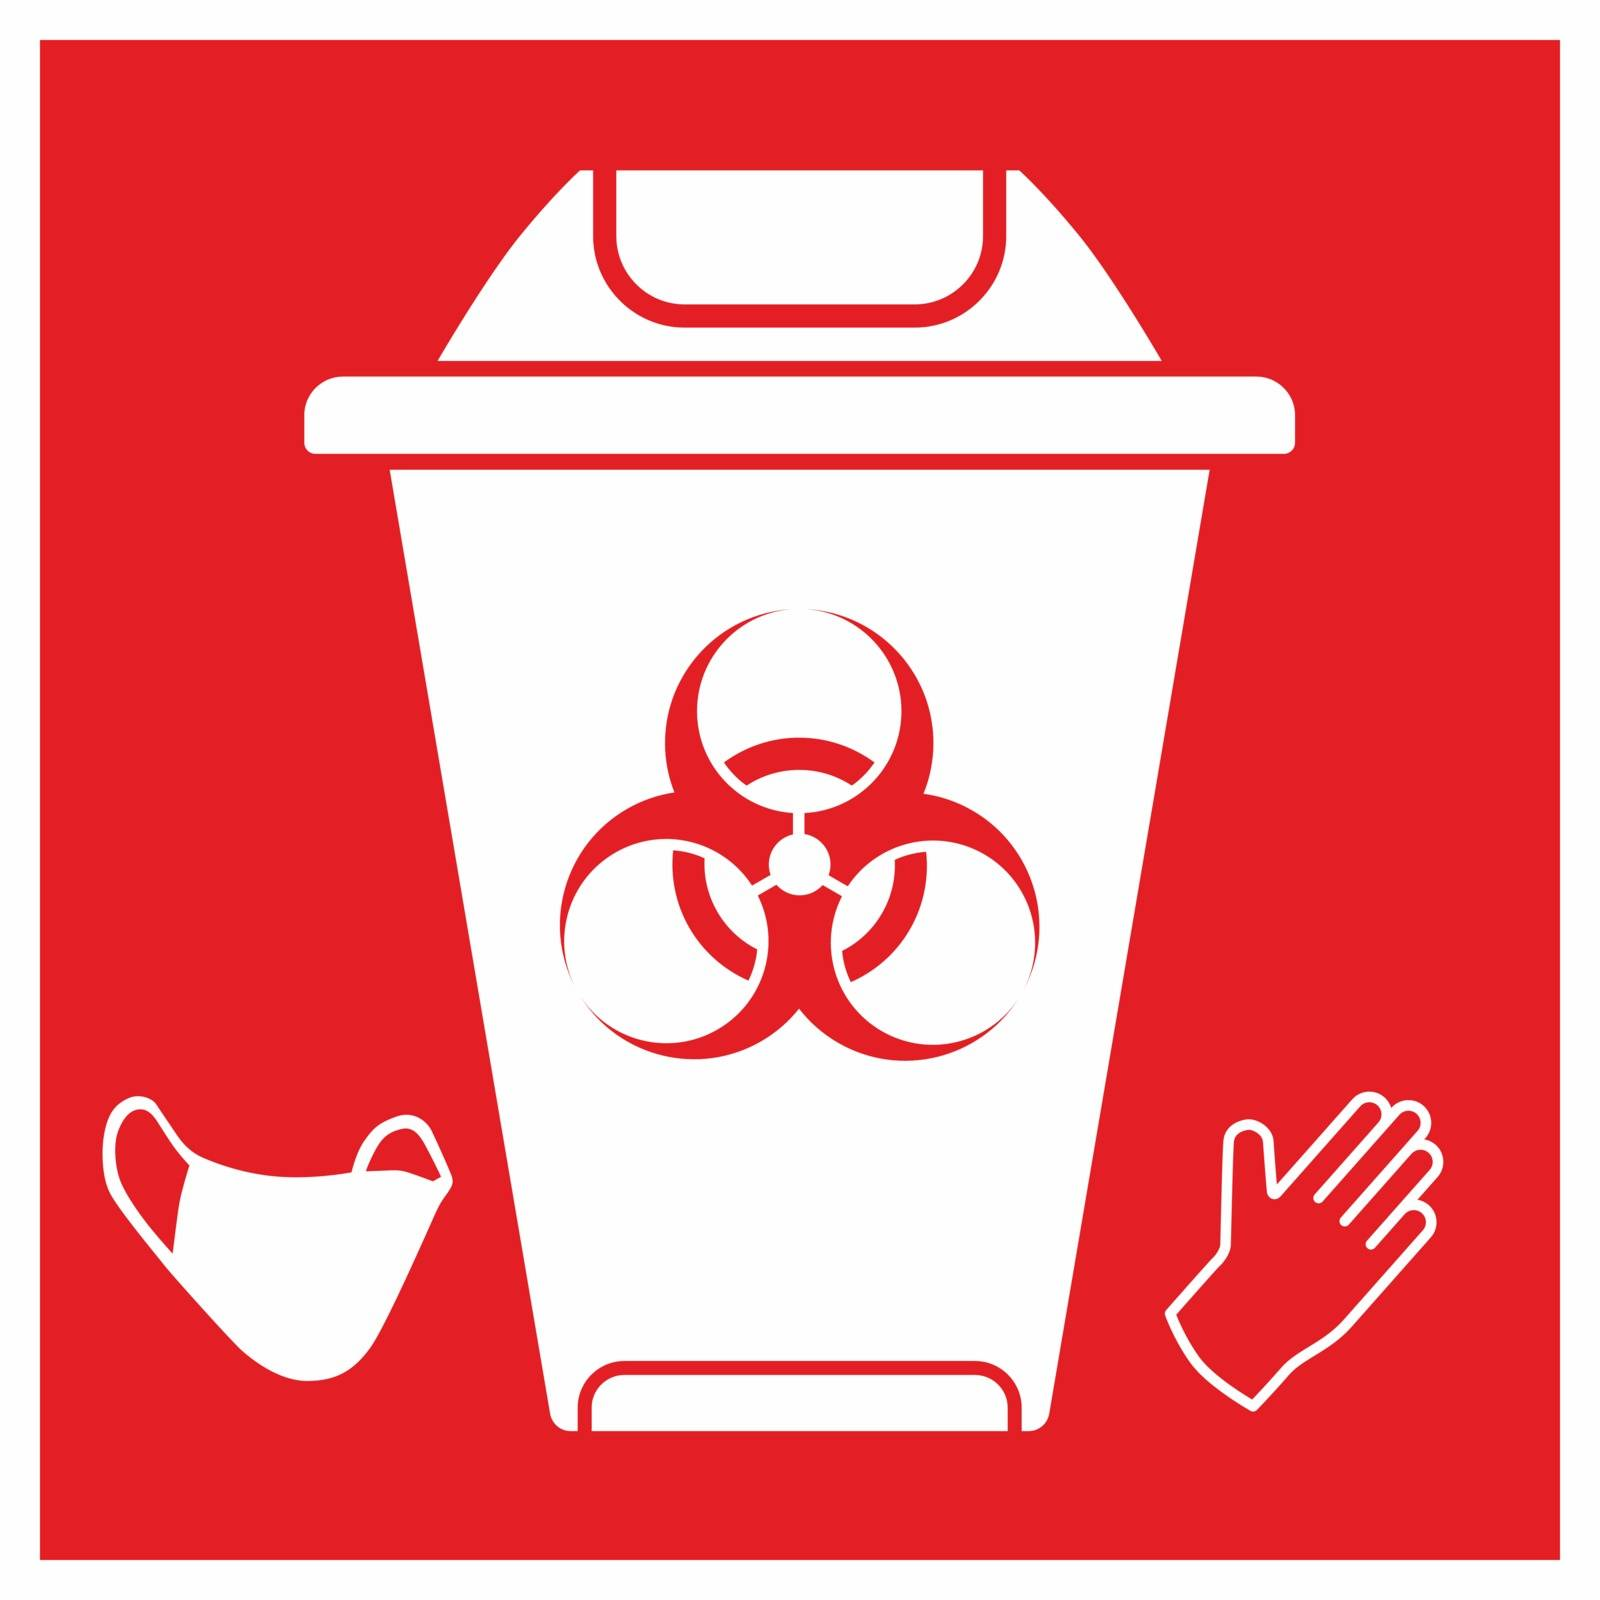 Red rectangle sign Biohazard trash garbage. Safely dispose contaminated gloves and face masks.Do not Reuse.Medical waste bin. .Coronavirus covid-19 pandemic.